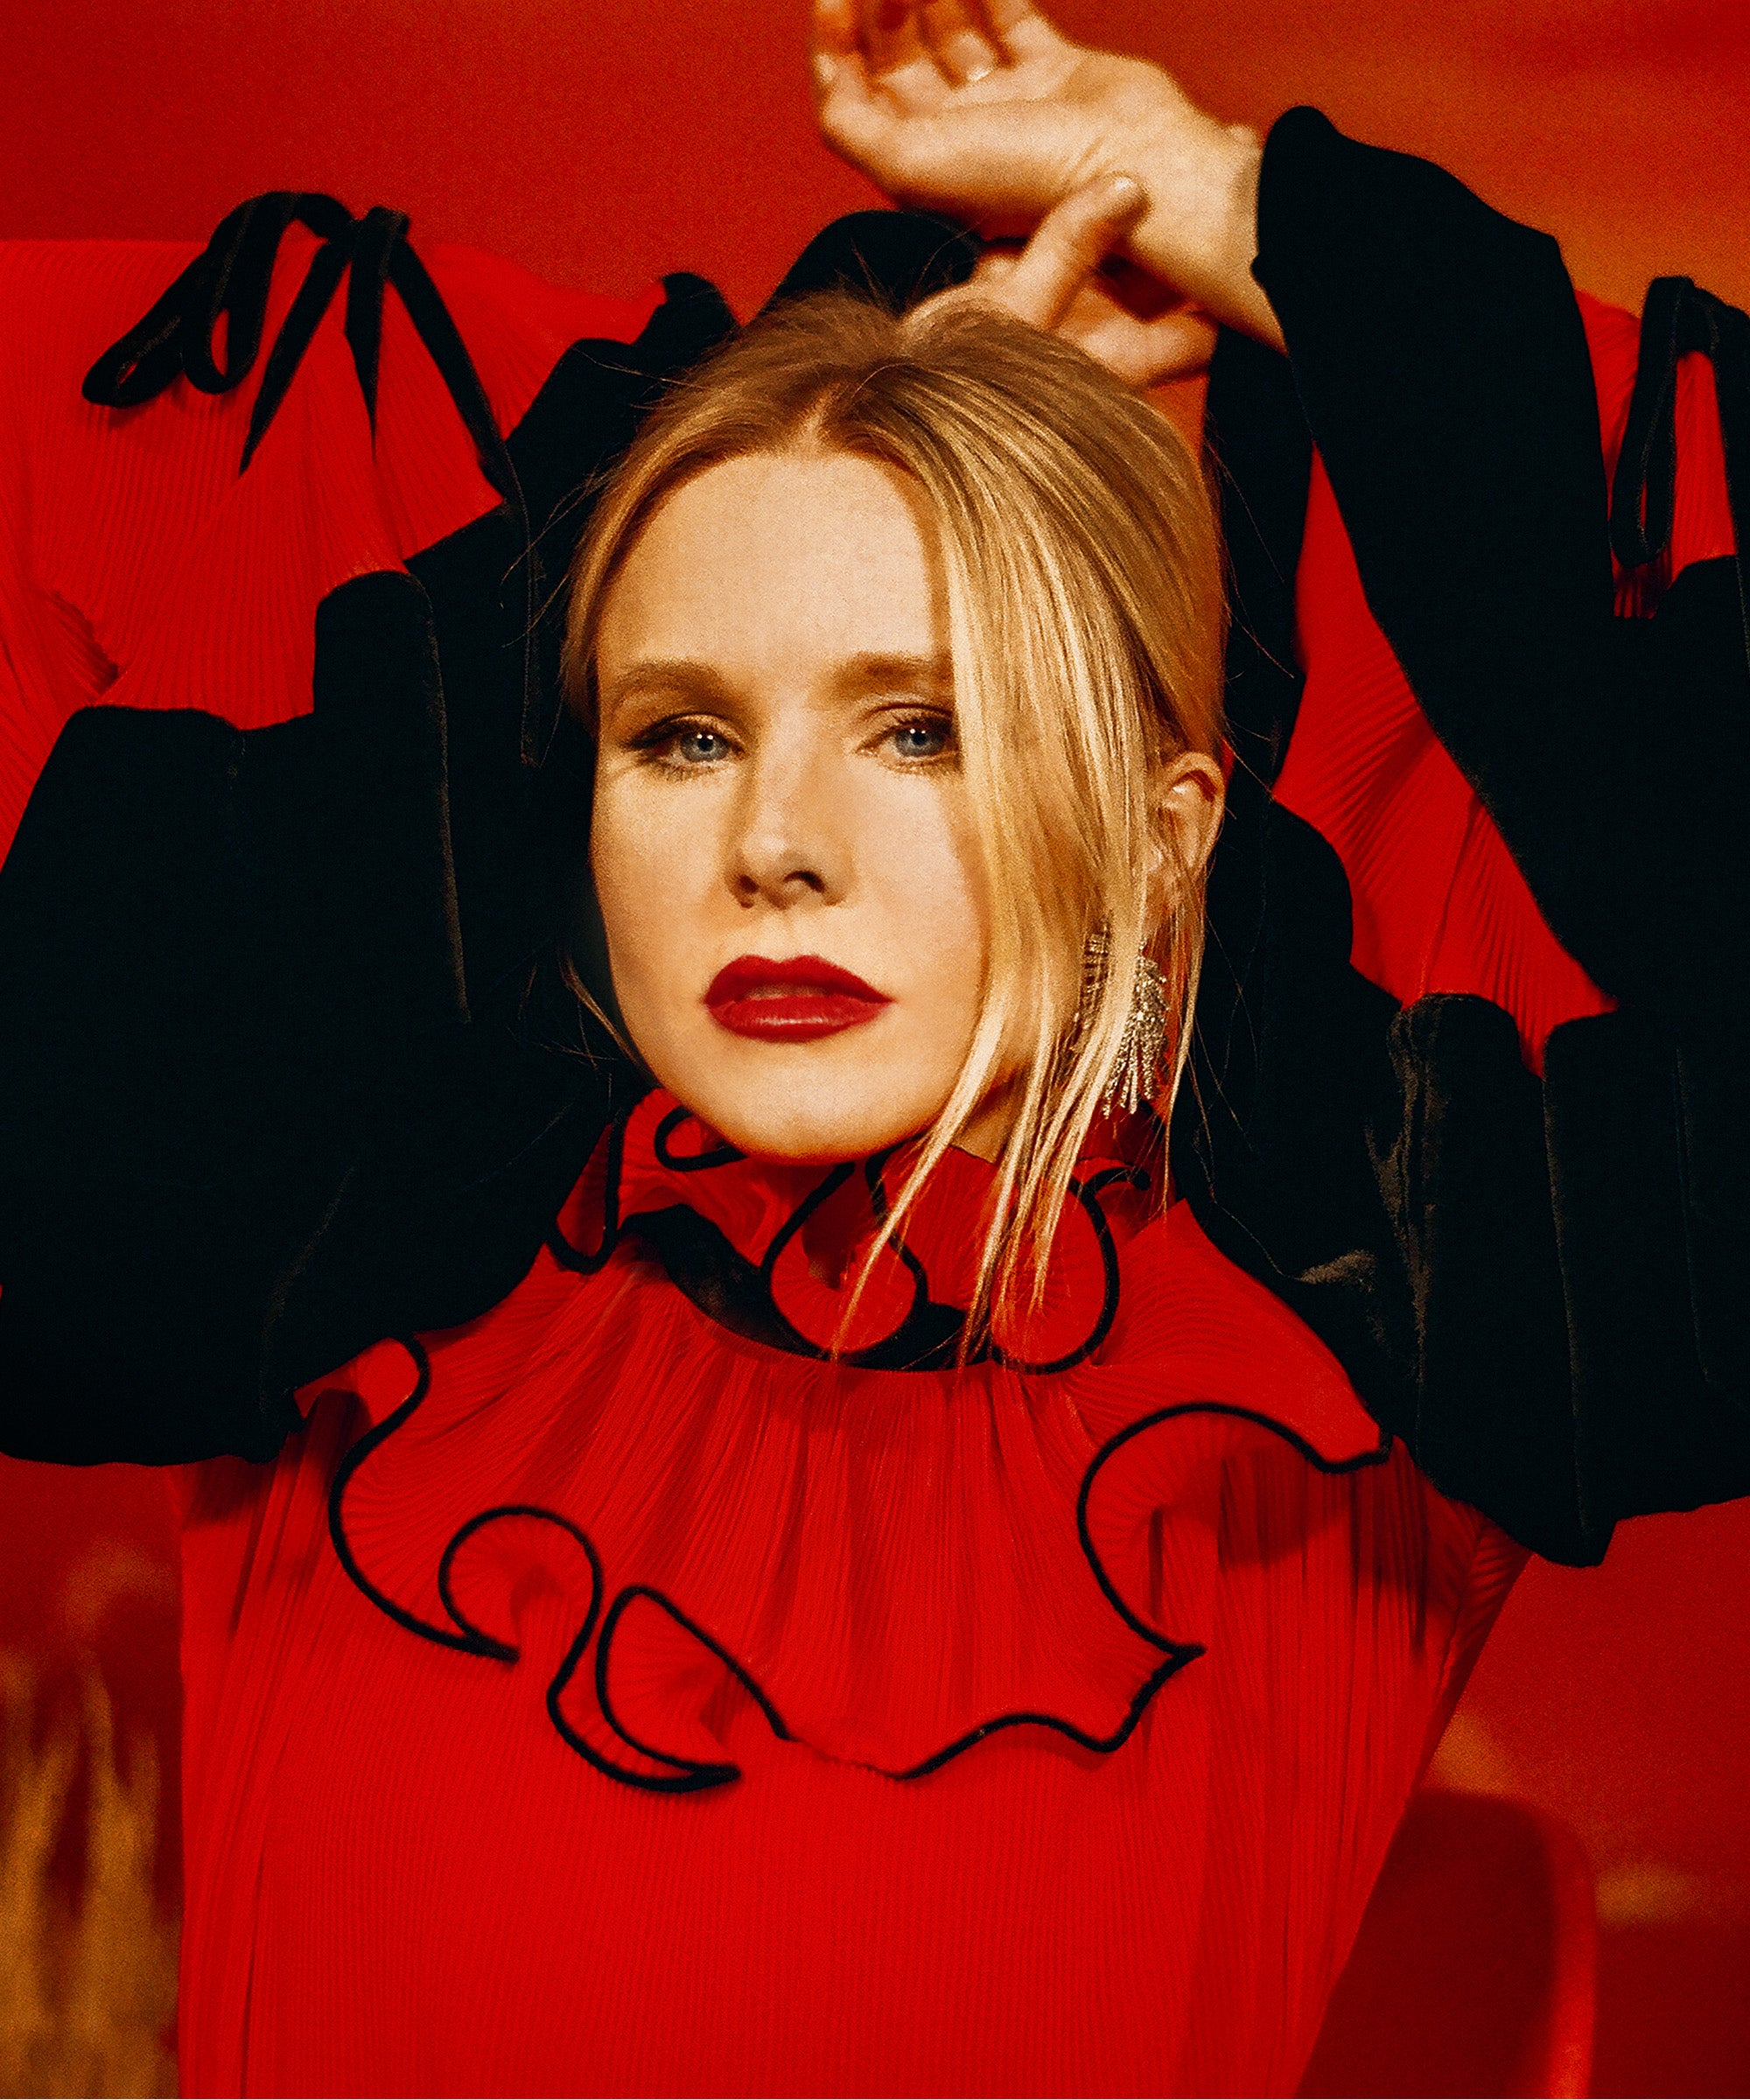 From Cult Antihero To Critical Darling, Kristen Bell Is On Fire